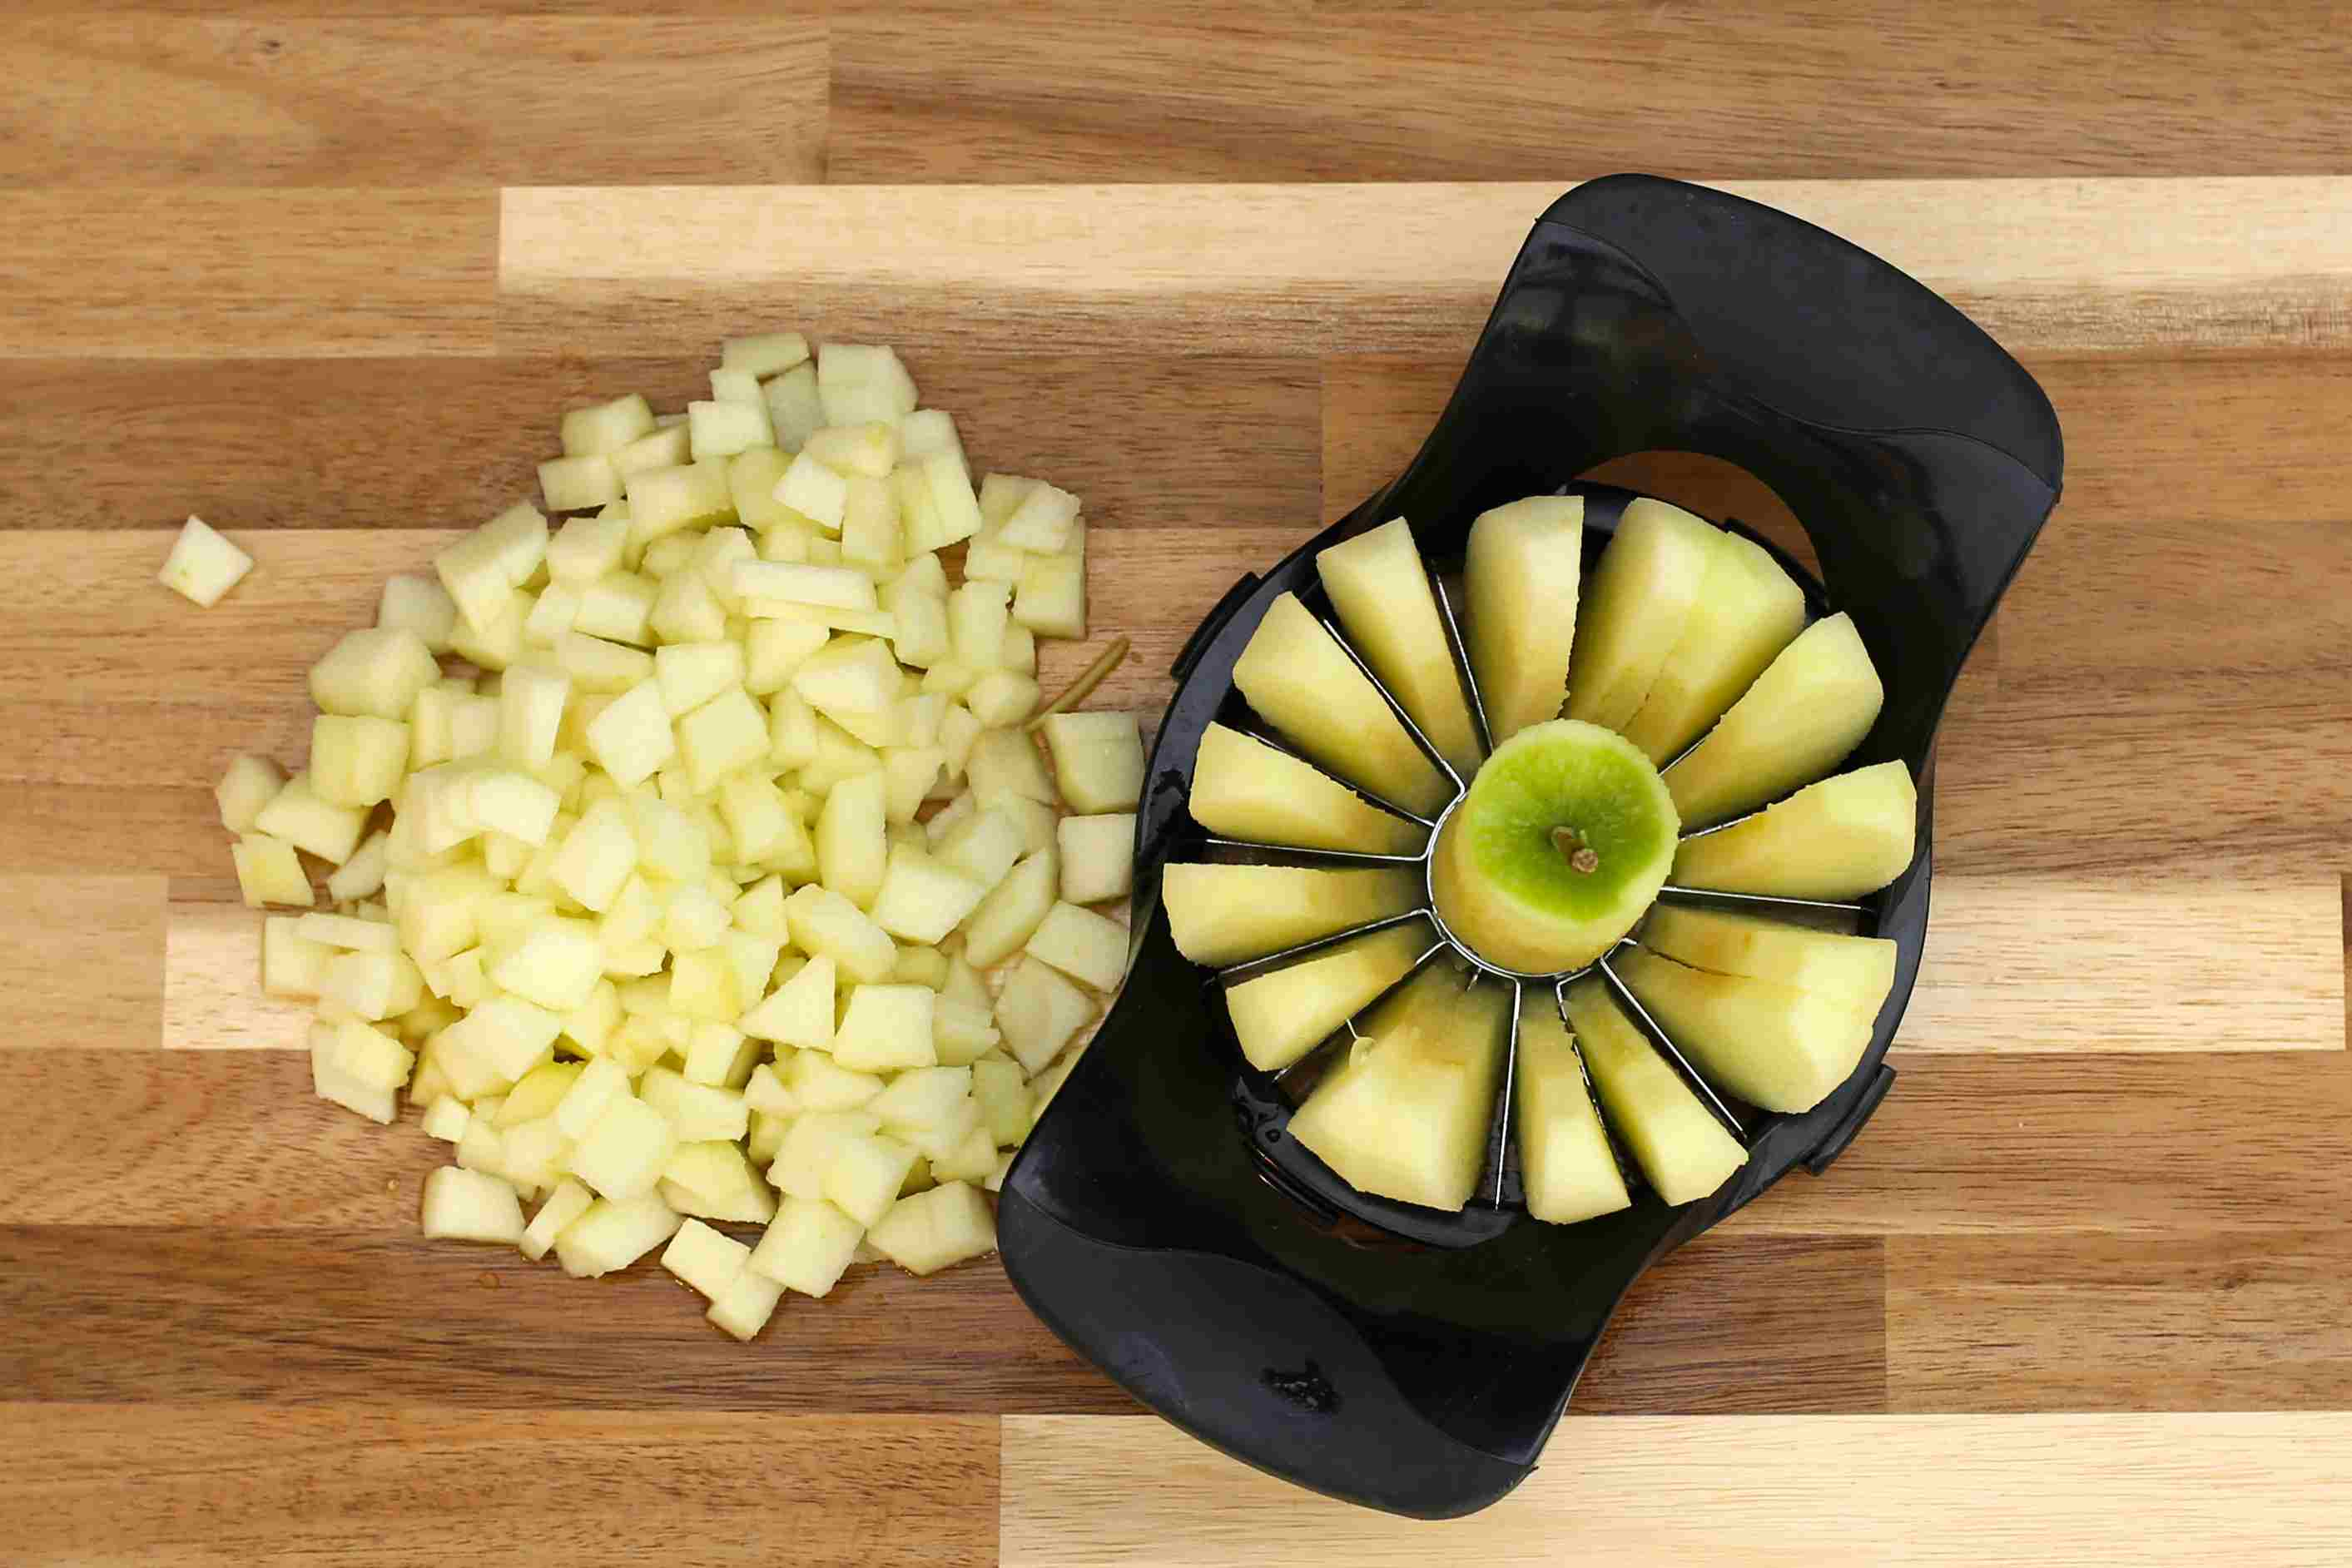 peel, core, and slice the apples